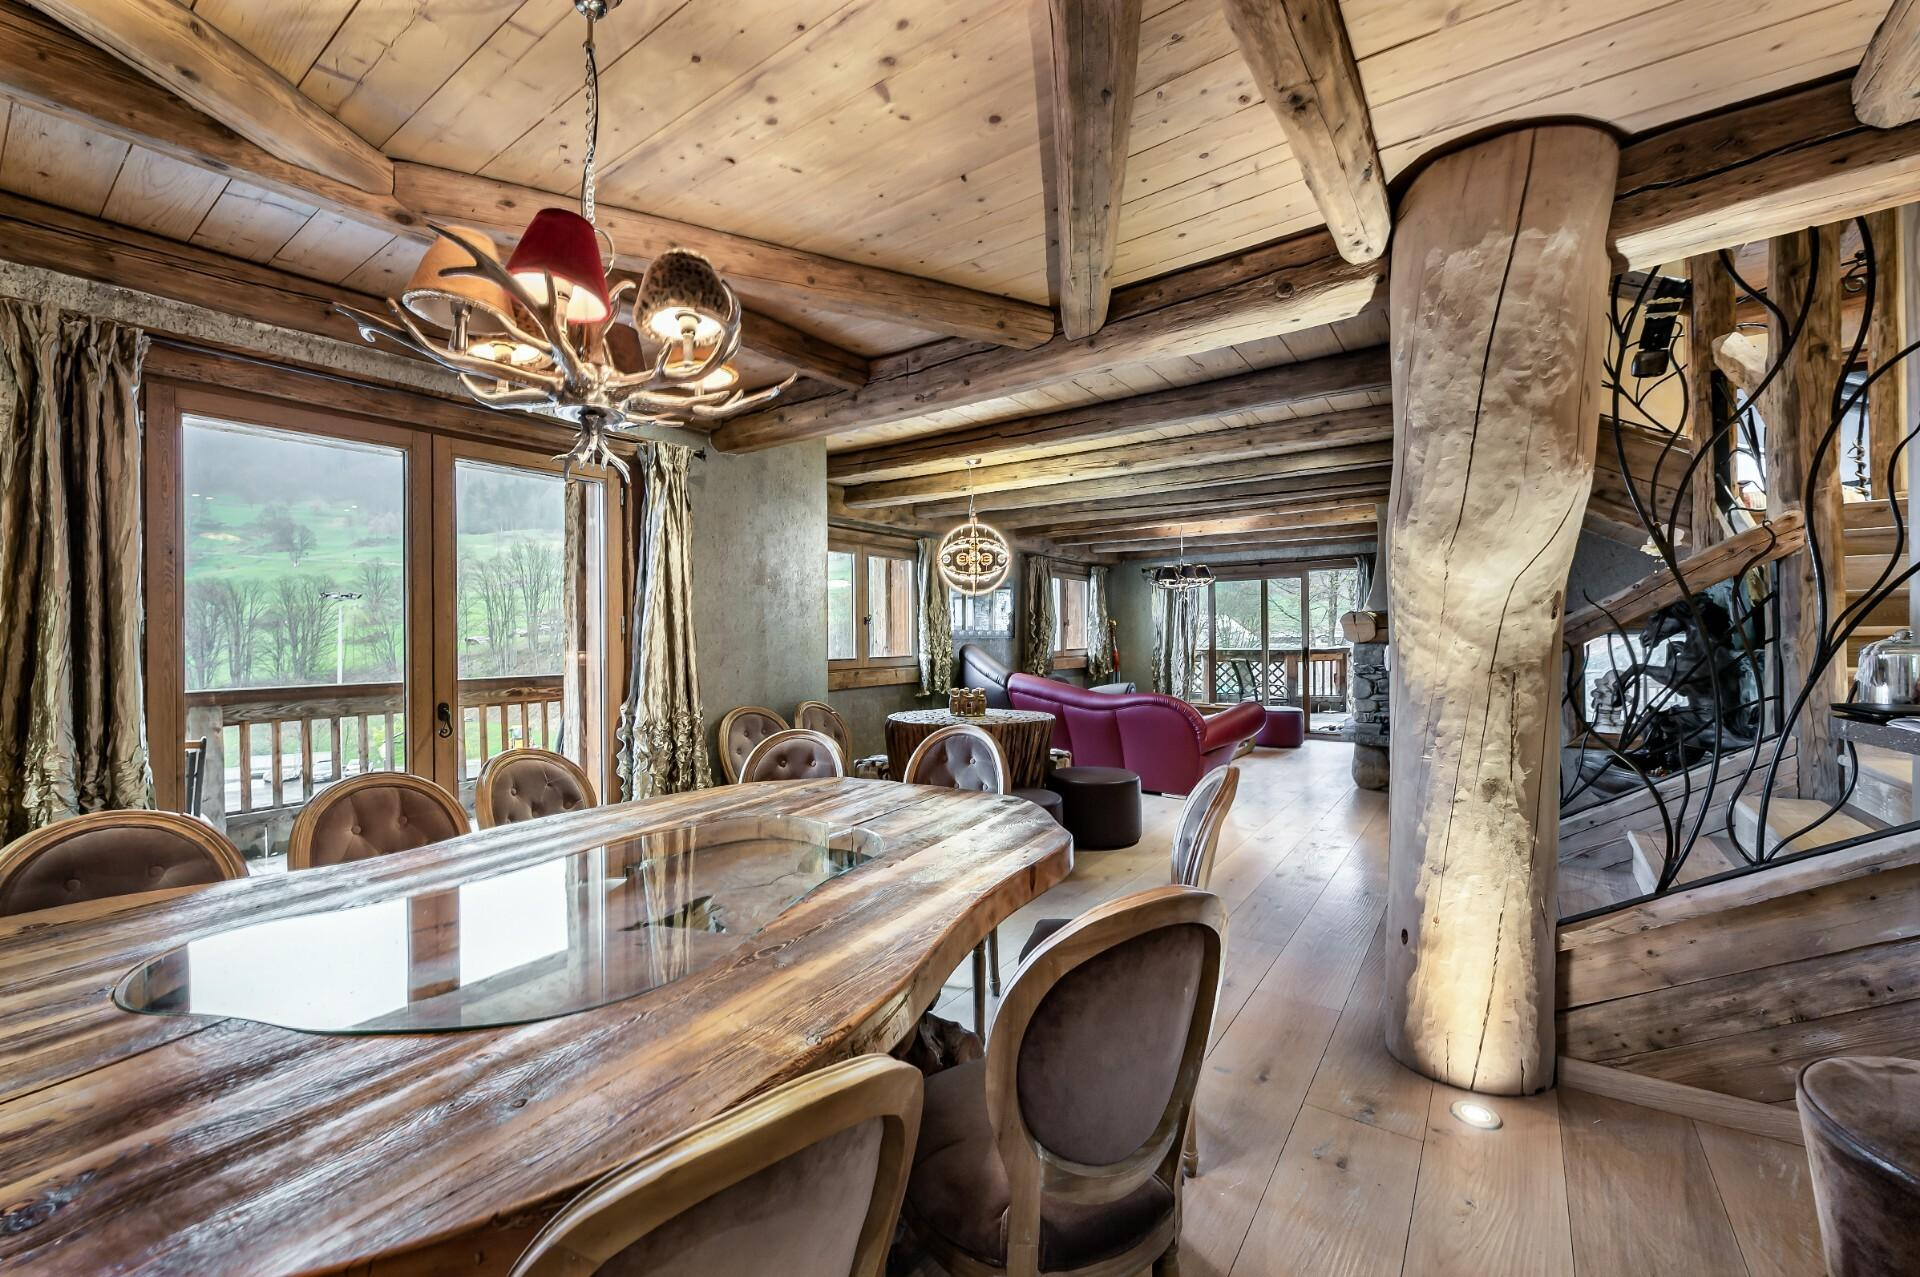 CHALET AUTHENTIQUE